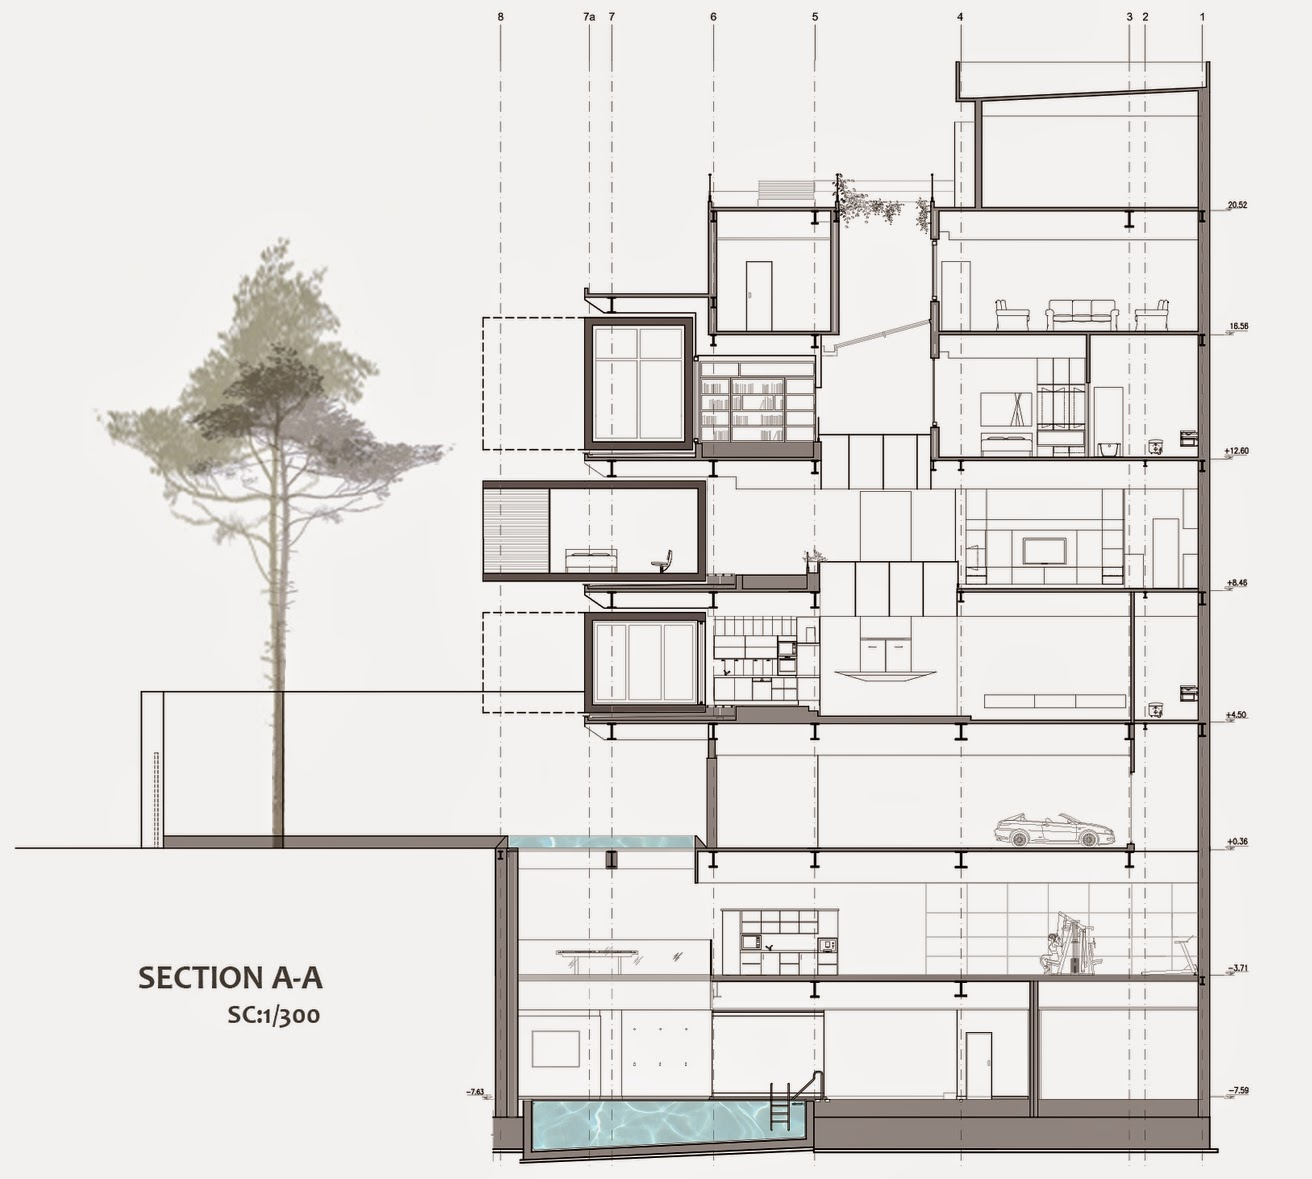 05-Section-Nextoffice-Sharifi-Ha-House-Revolving-Rooms-Architecture-www-designstack-co